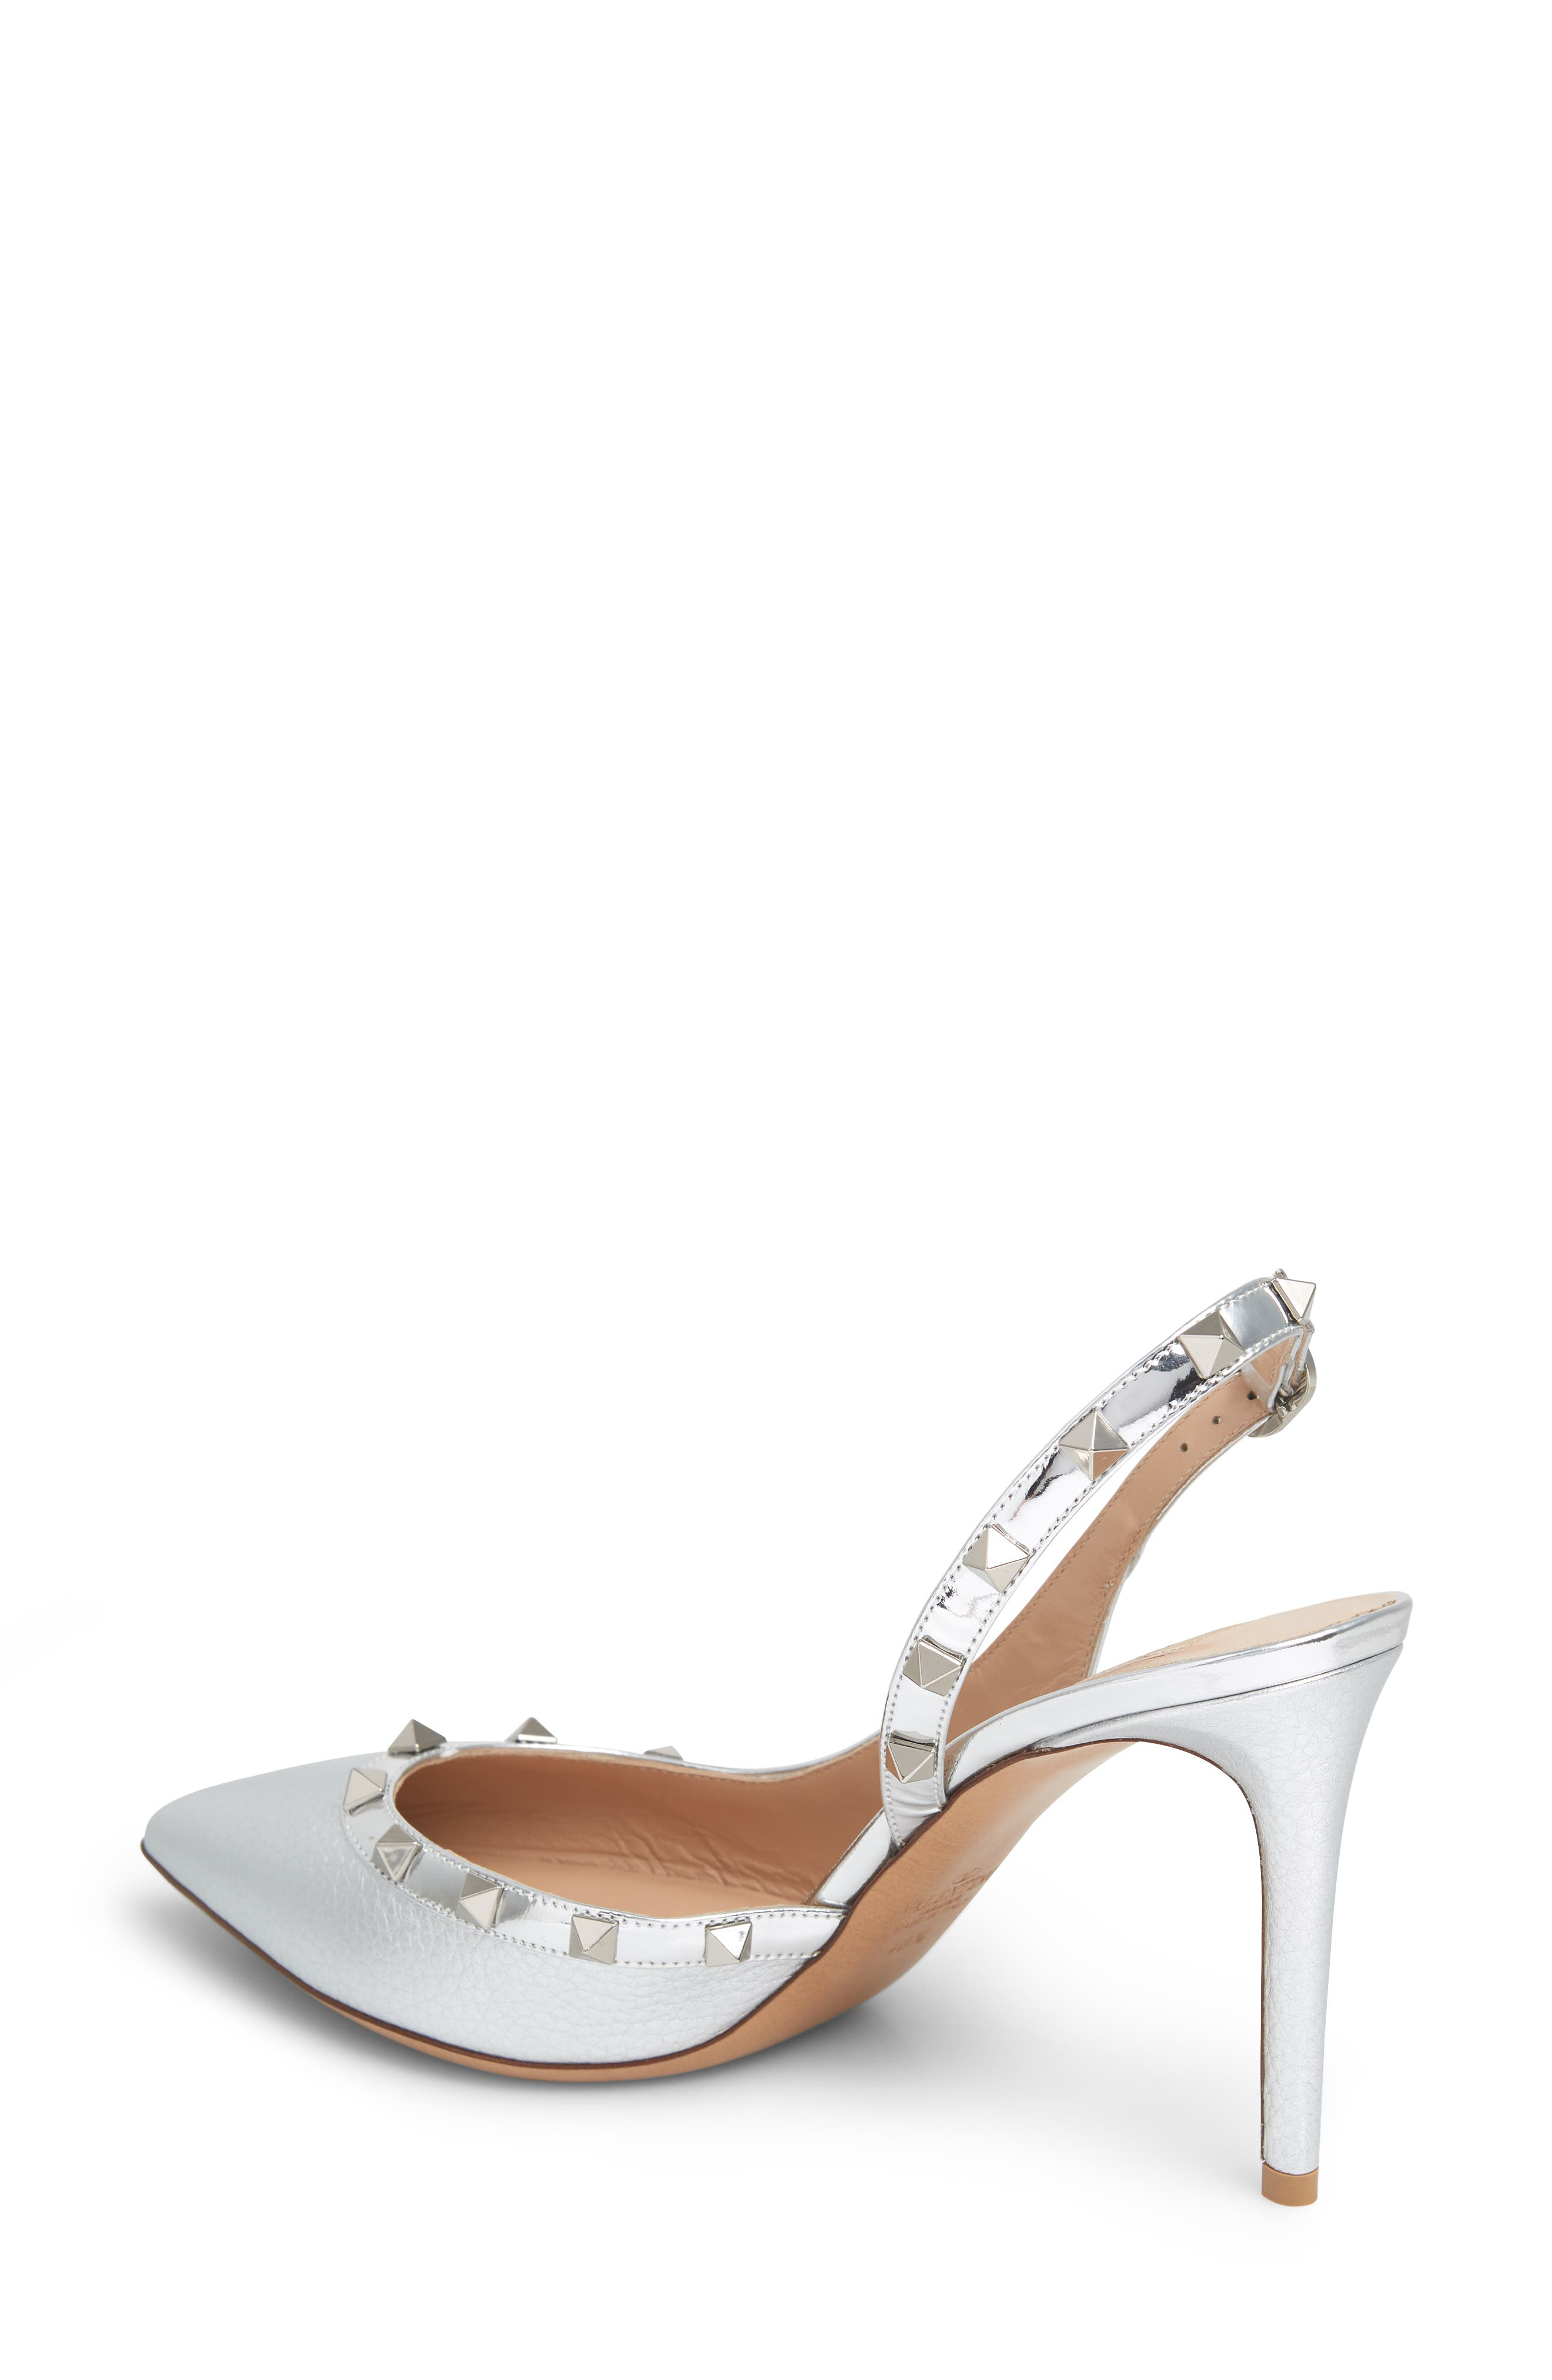 Rockstud Slingback Pump,                             Alternate thumbnail 2, color,                             SILVER